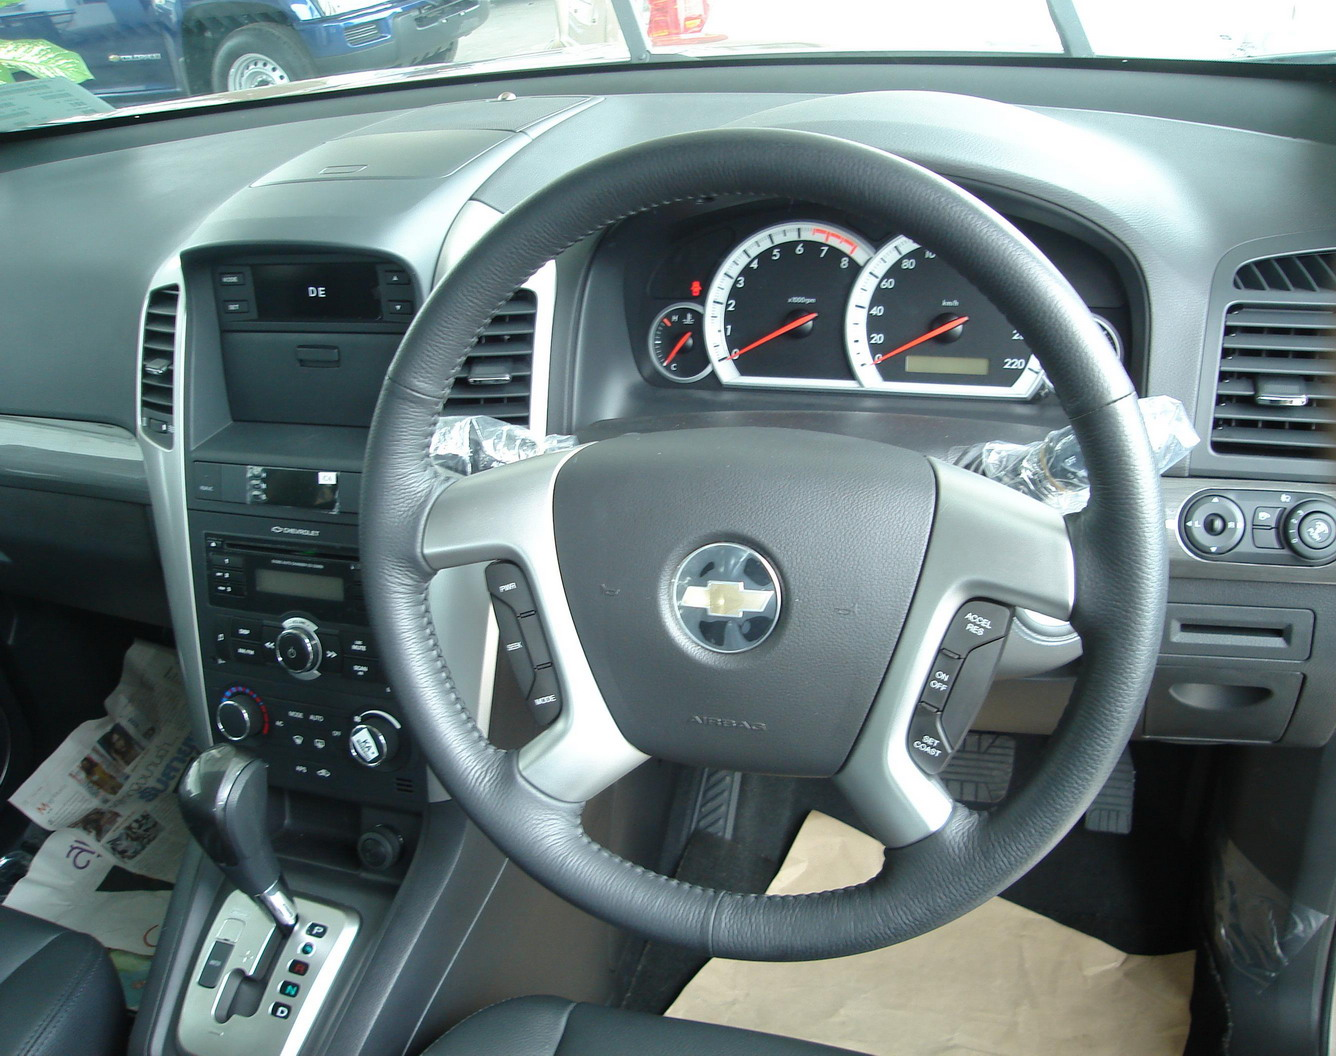 File:Chevrolet Captiva interior 3.jpg - Wikimedia Commons